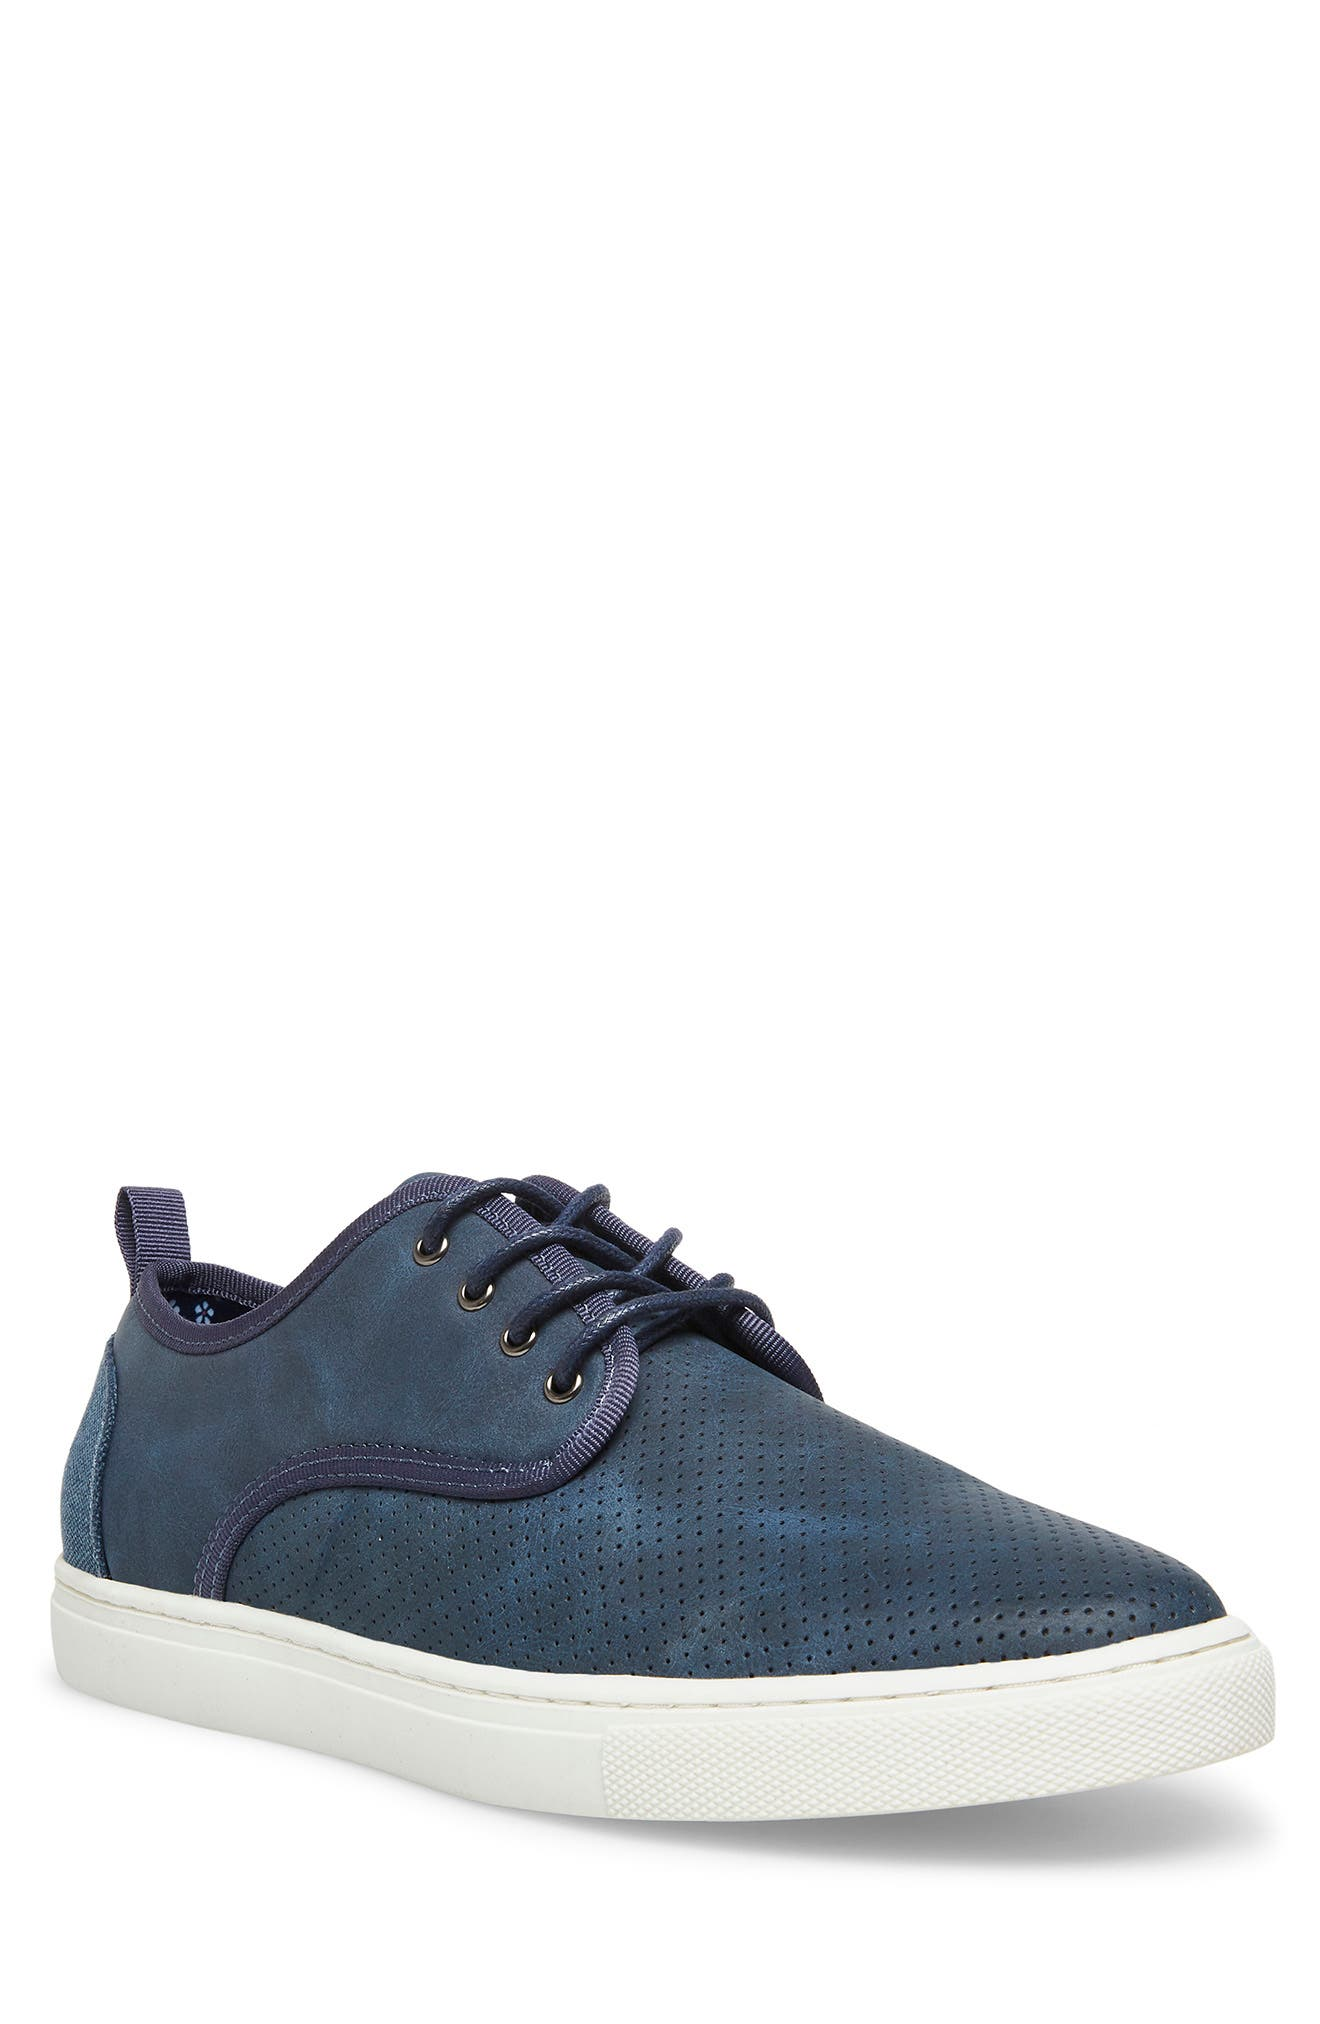 Image of Madden Casit Perforated Fashion Sneaker